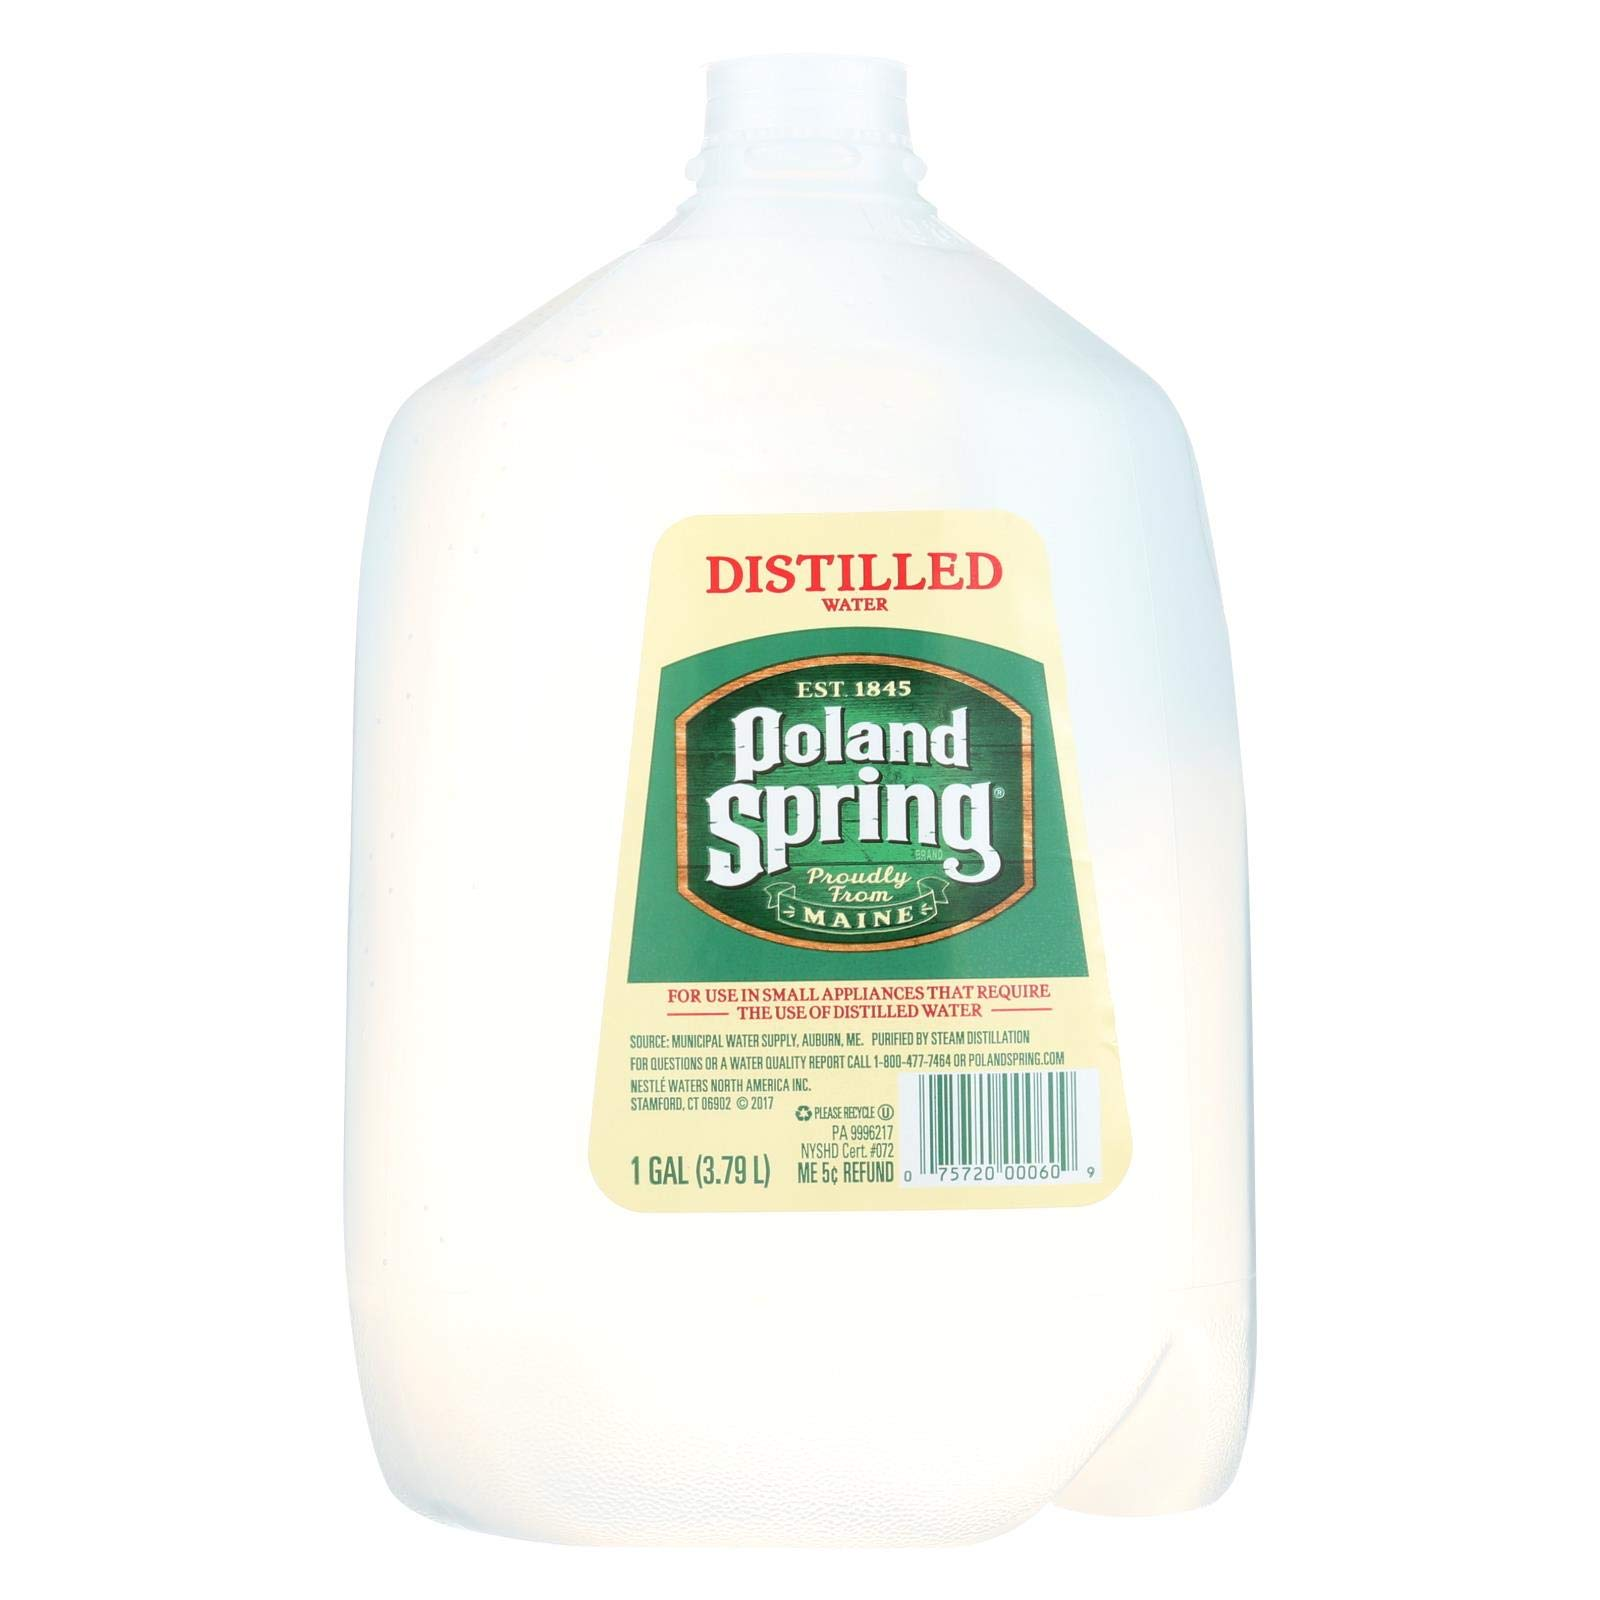 POLAND SPRINGS WATER DISTILLED, 6 1 Gallon Bottles by Poland Springs